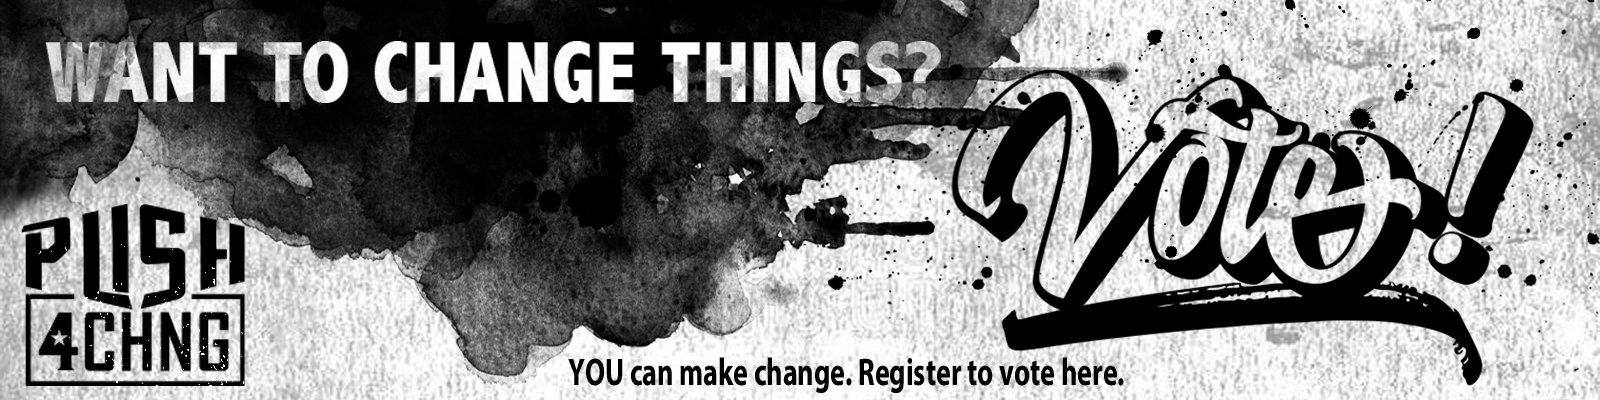 Want to change things? Vote